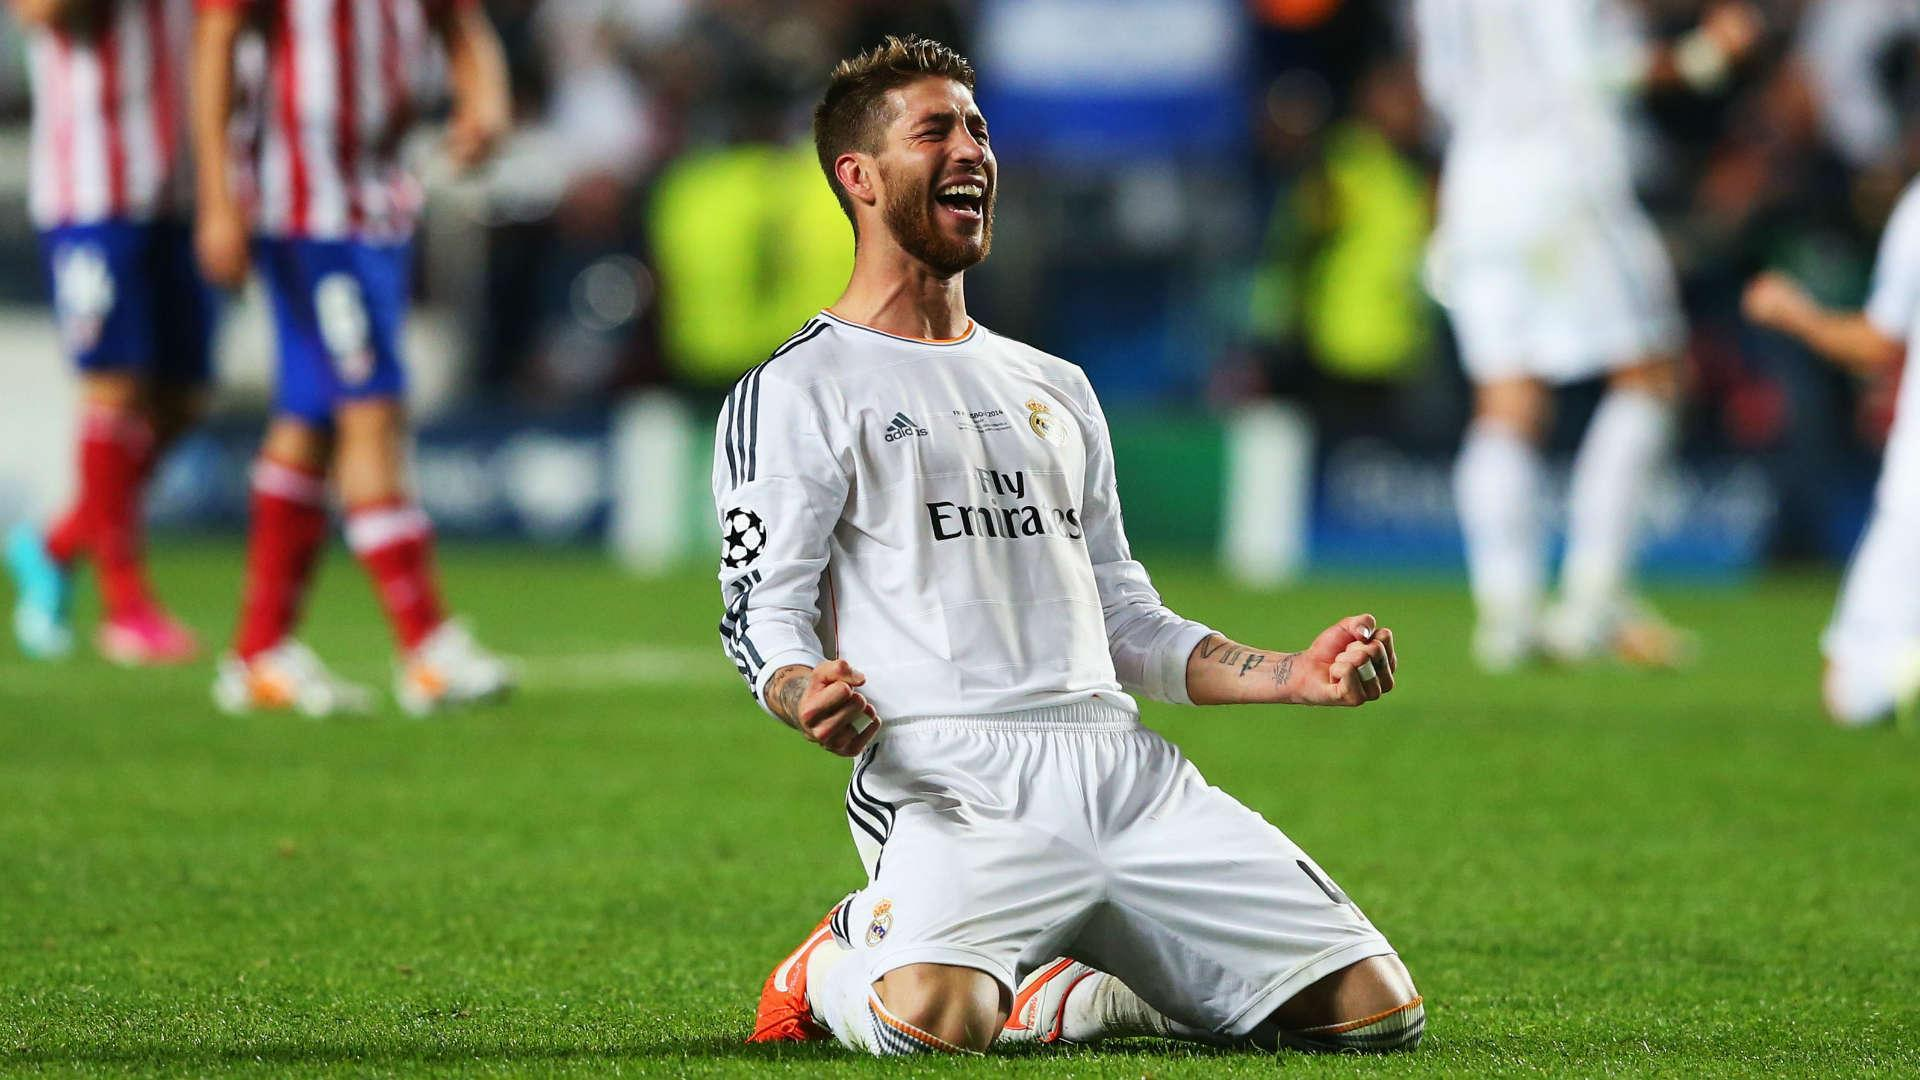 sergio ramos hd images - photo #15